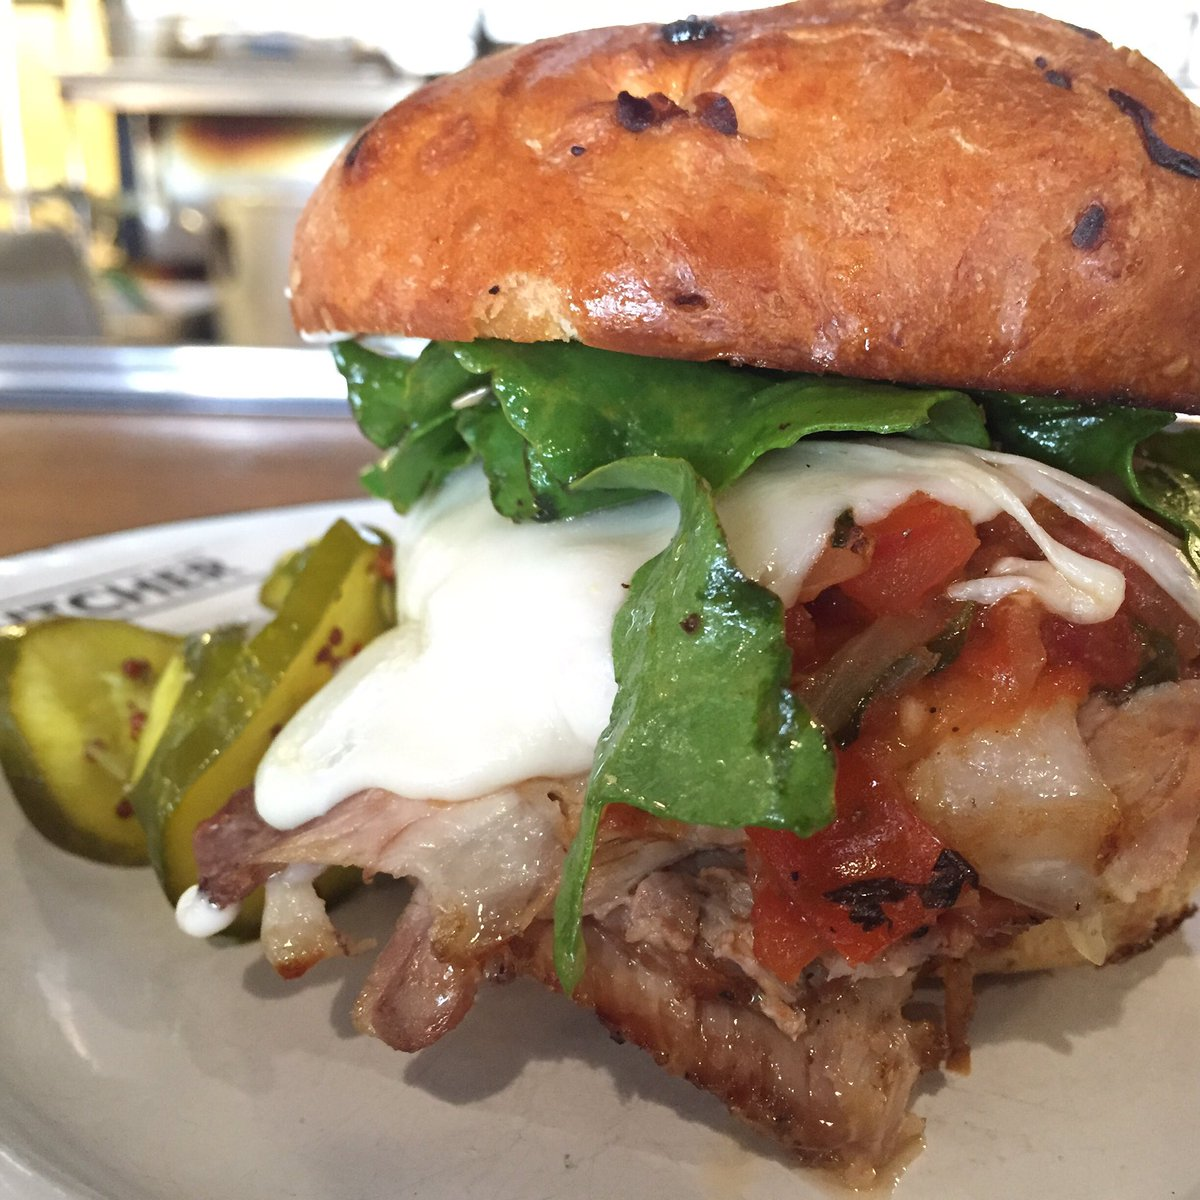 Braised #pork'wich w/provolone, avocado, beet tops + salsa roja. #lunch looks good like this https://t.co/muWMagDd1d